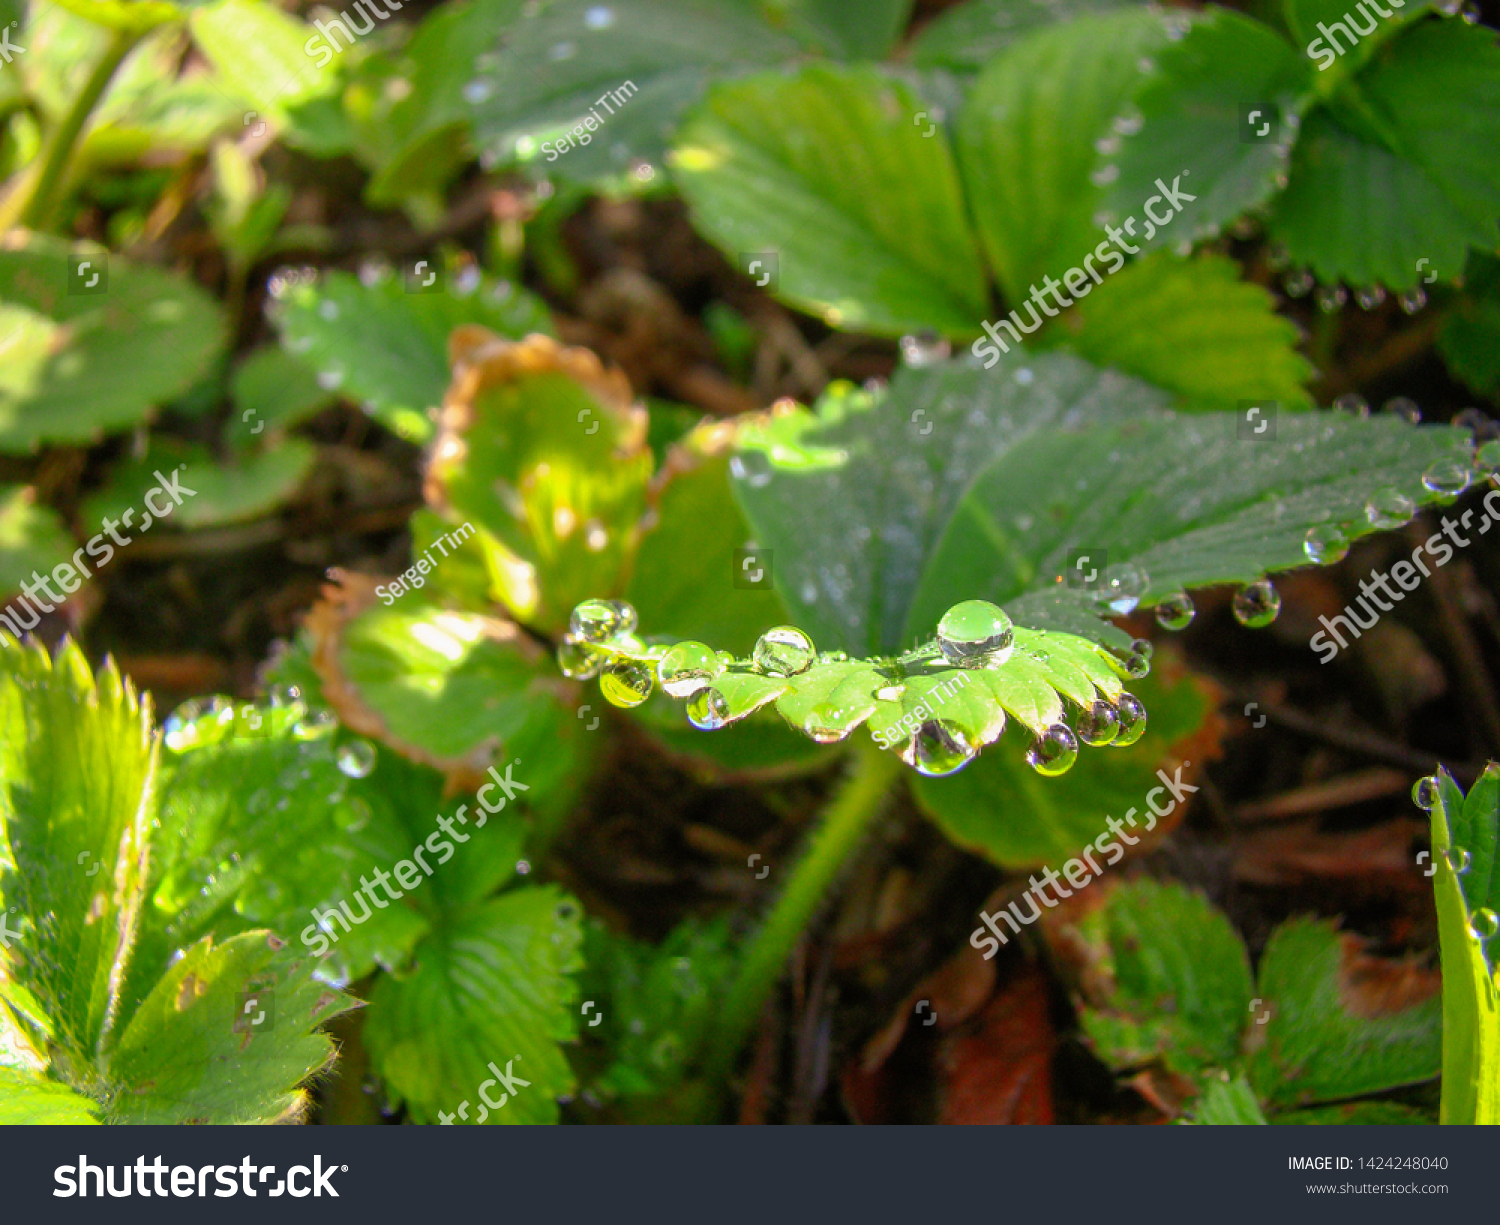 stock-photo-green-strawberry-sheets-with